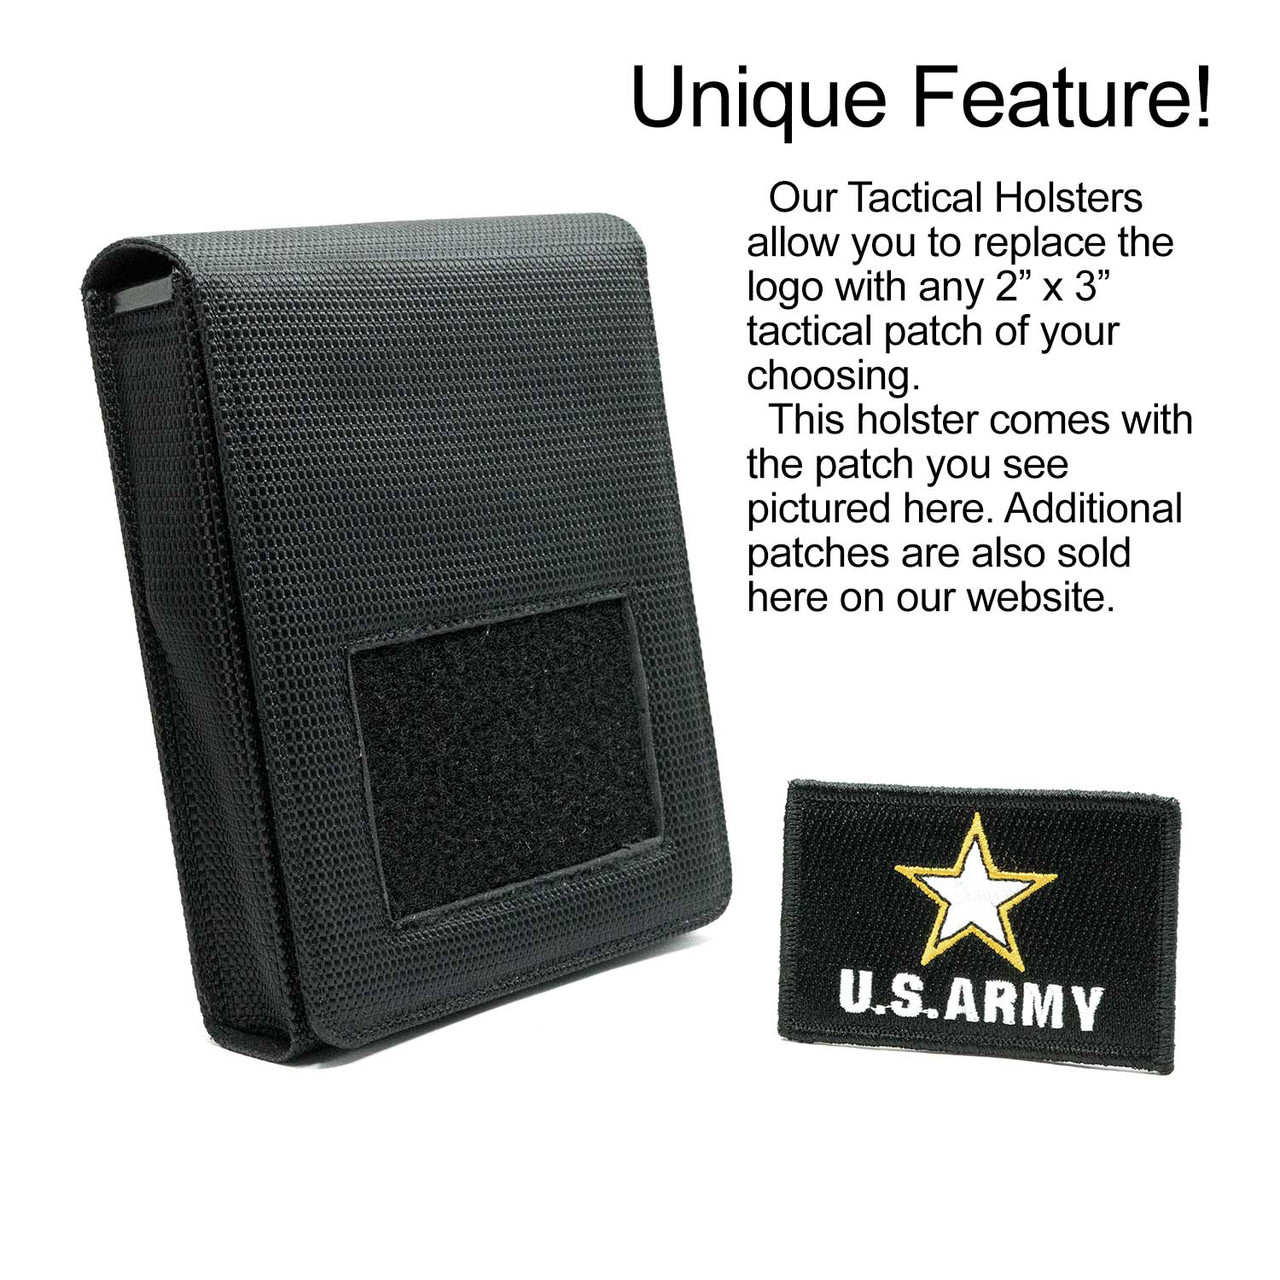 Taurus G2C Army Tactical Patch Holster